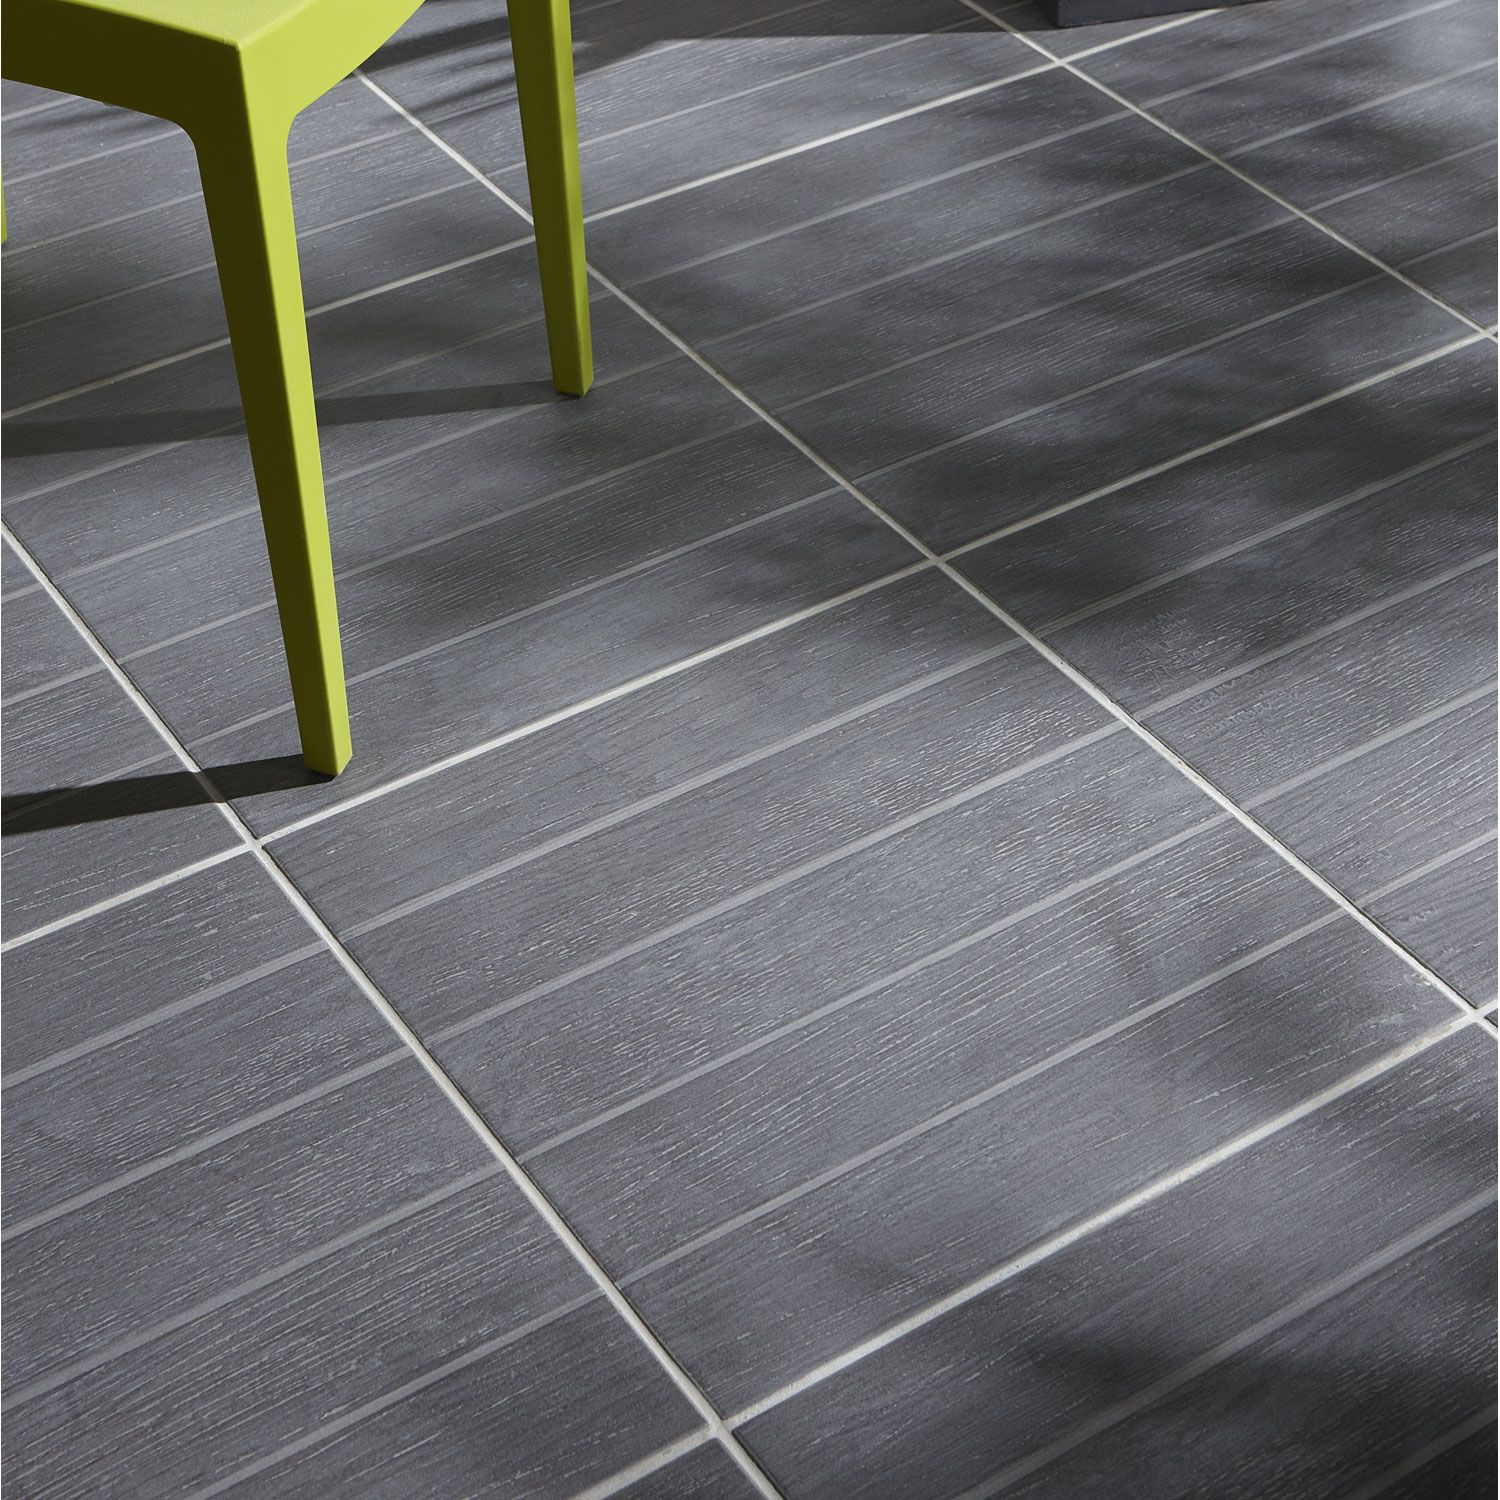 Maison moderne carrelage for Carrelage exterieur gris anthracite